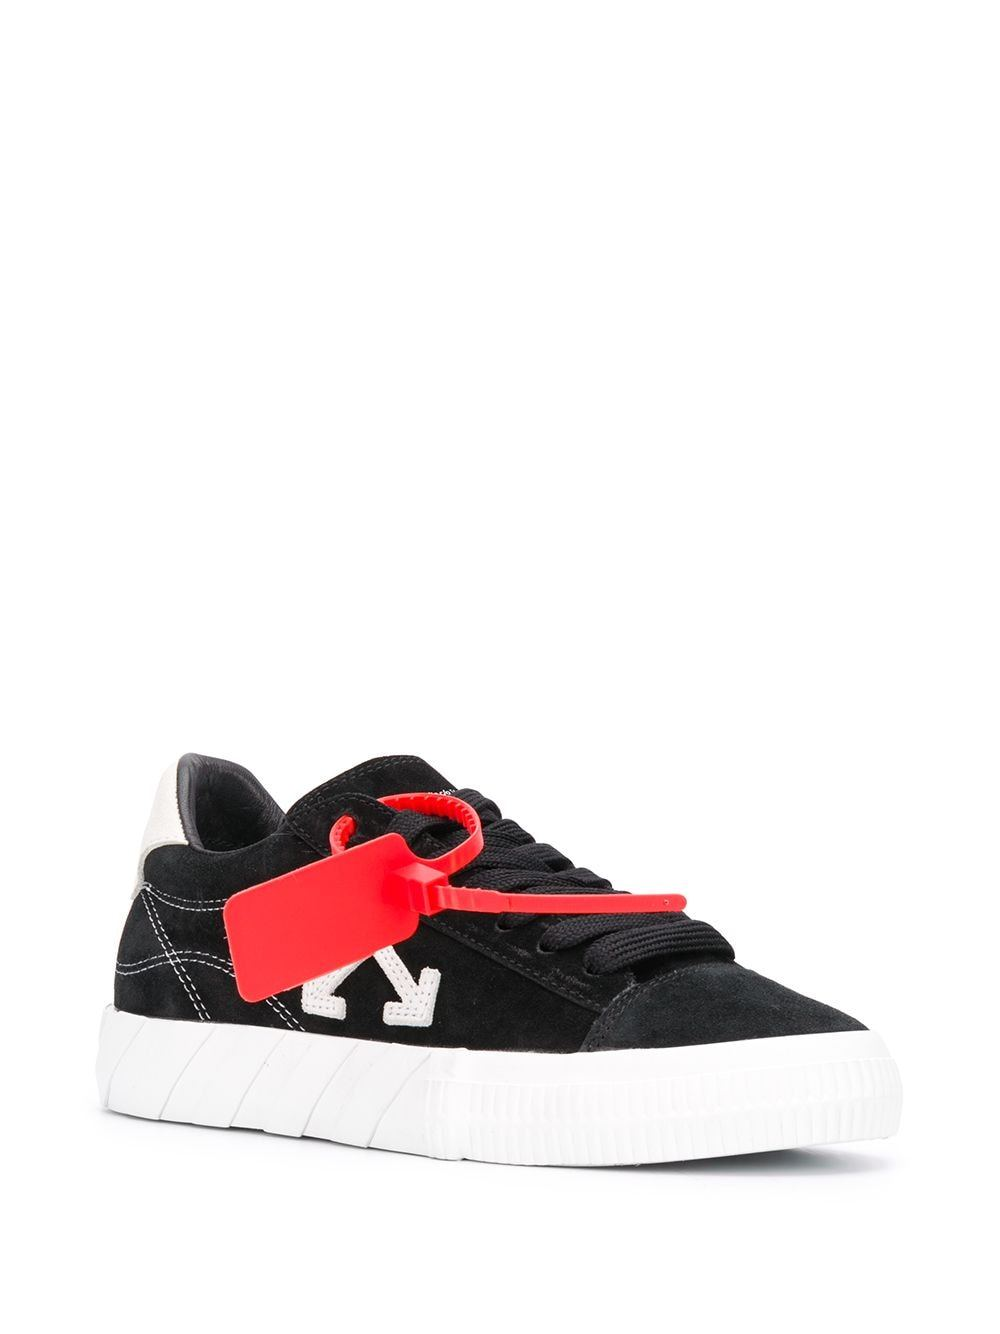 OFF-WHITE Women New Arrow Low Vulcanized Sneakers Black